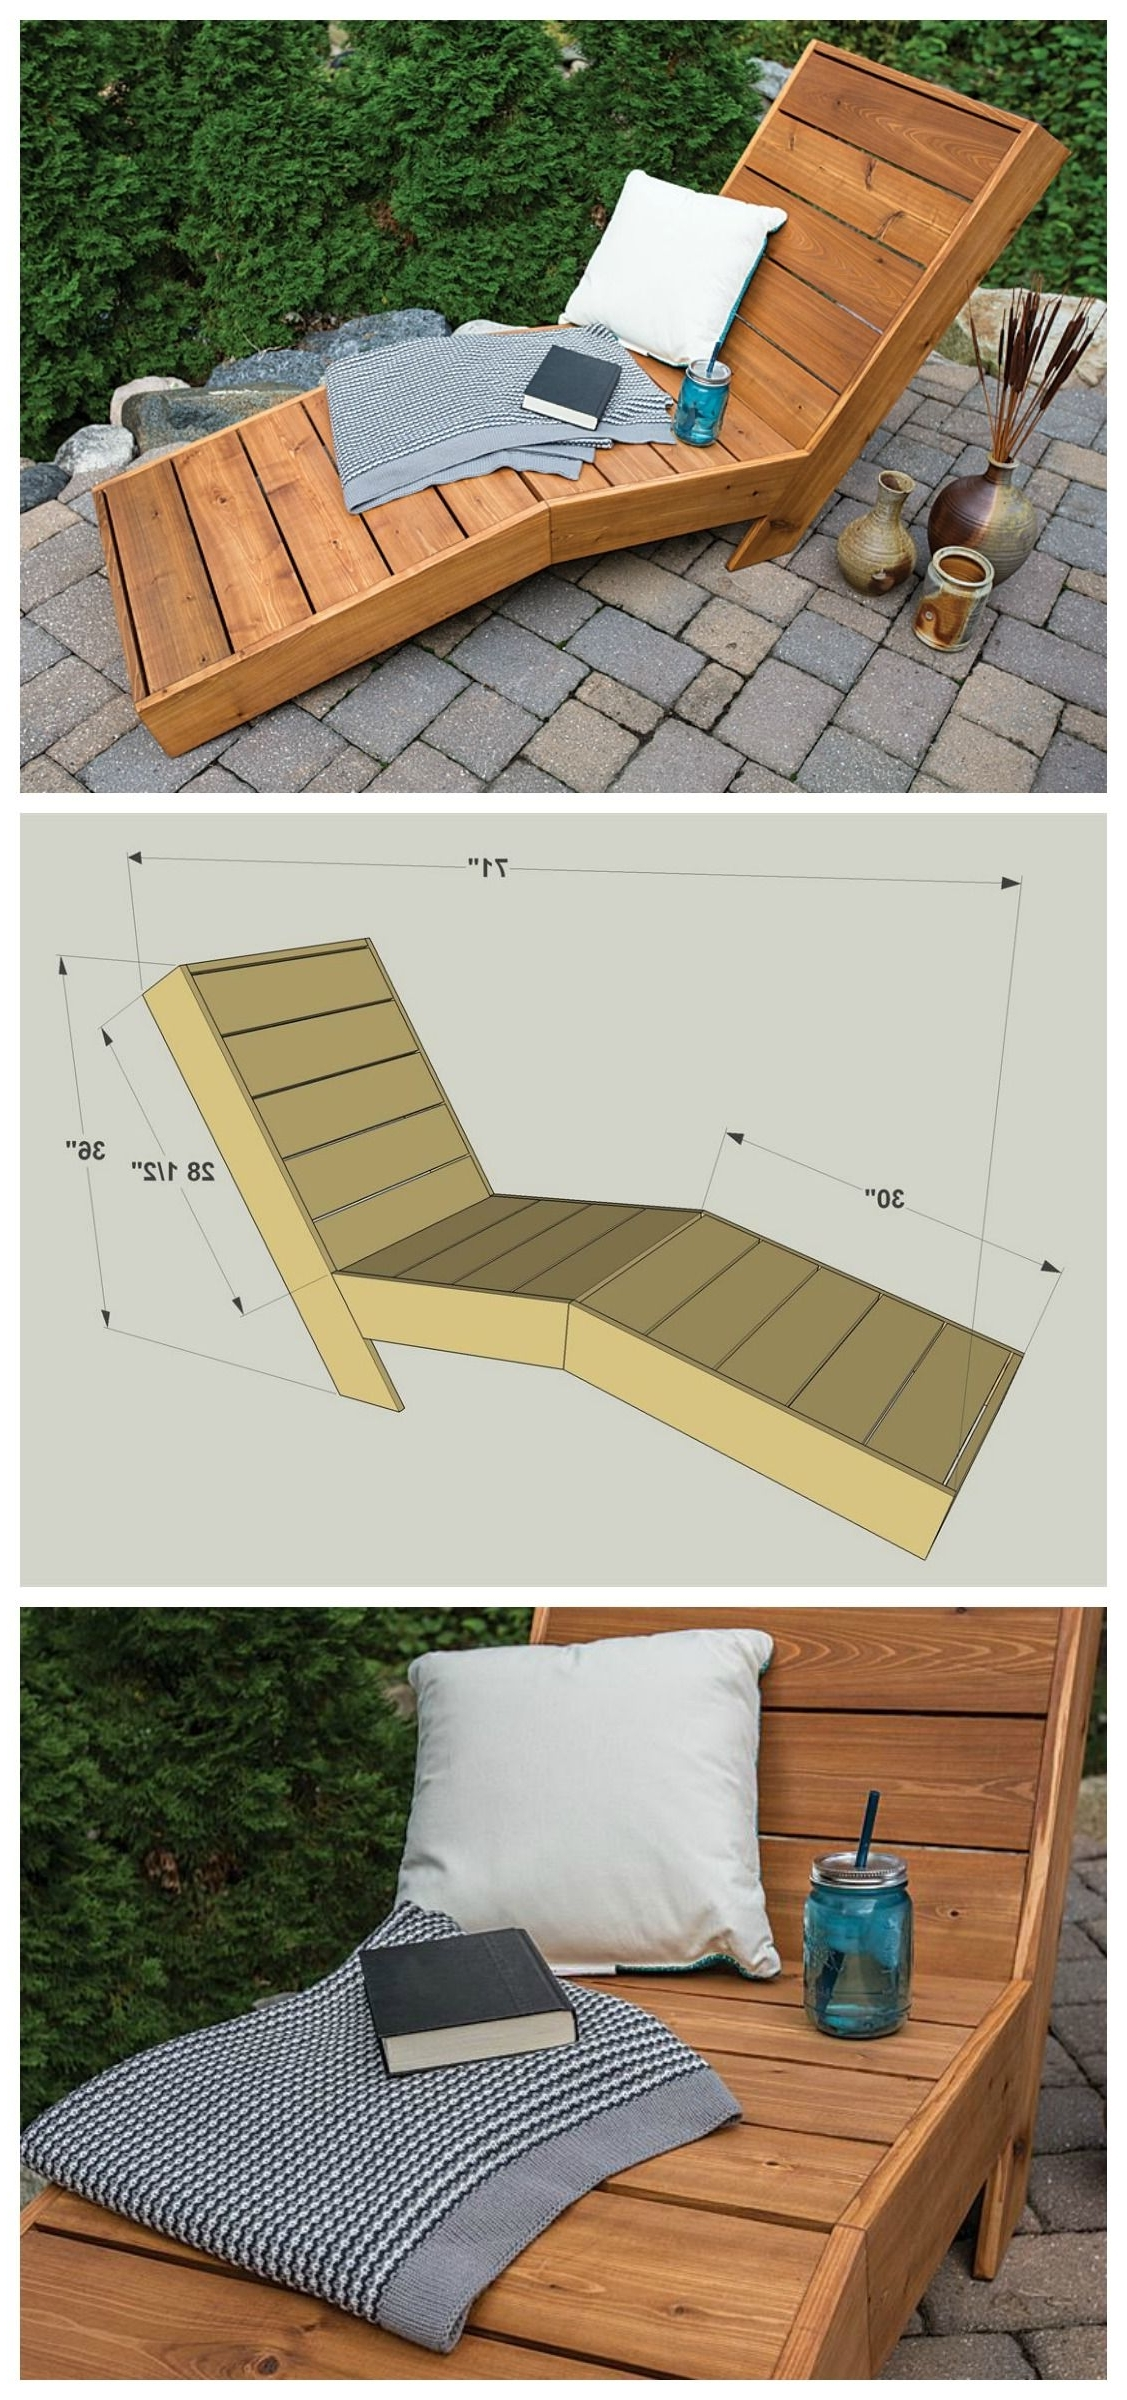 Diy Outdoor Chaise Lounge Chairs Inside Well Known Diy Outdoor Chaise Lounge :: Free Plans At Buildsomething (View 4 of 15)